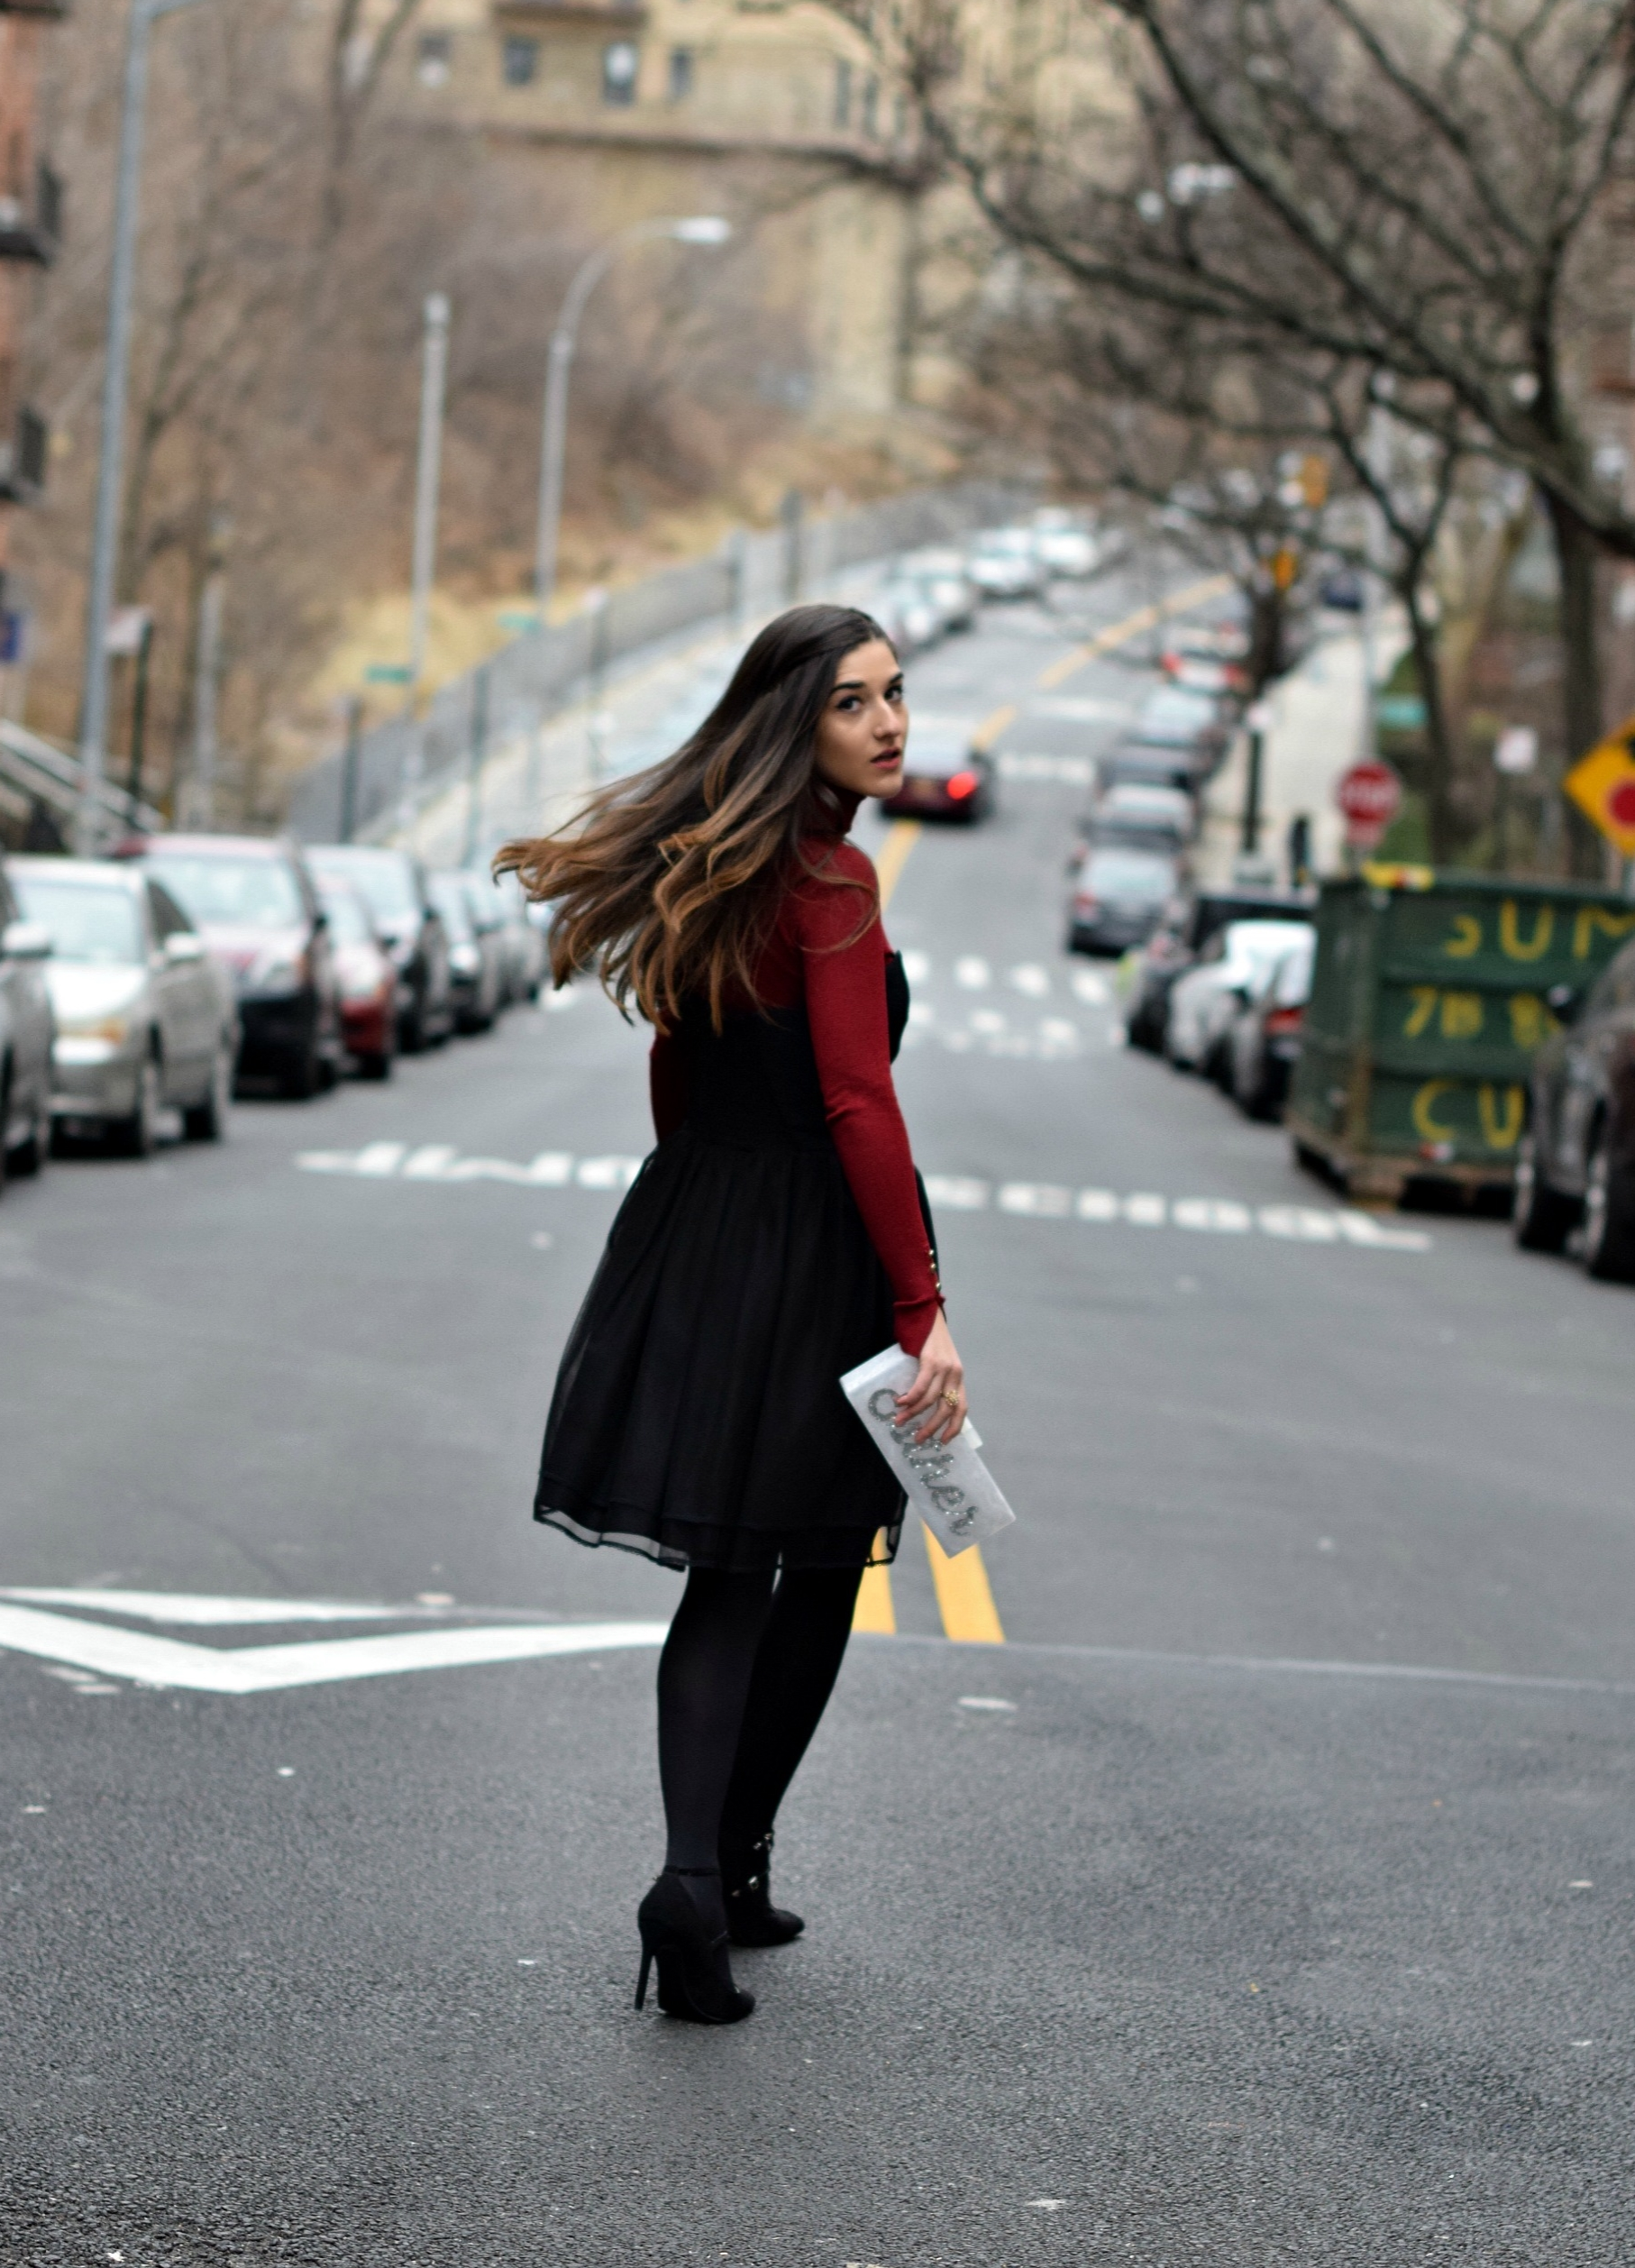 Red Turtleneck Under Strapless Dress Louboutins & Love Fashion Blog Esther Santer NYC Street Style Blogger Black Tights Name Monogrammed Clutch Hair Beautiful Inspo Model Photoshoot Shoes Heels Zara Outfit OOTD Shopping Girl Women New York City Winter.jpg